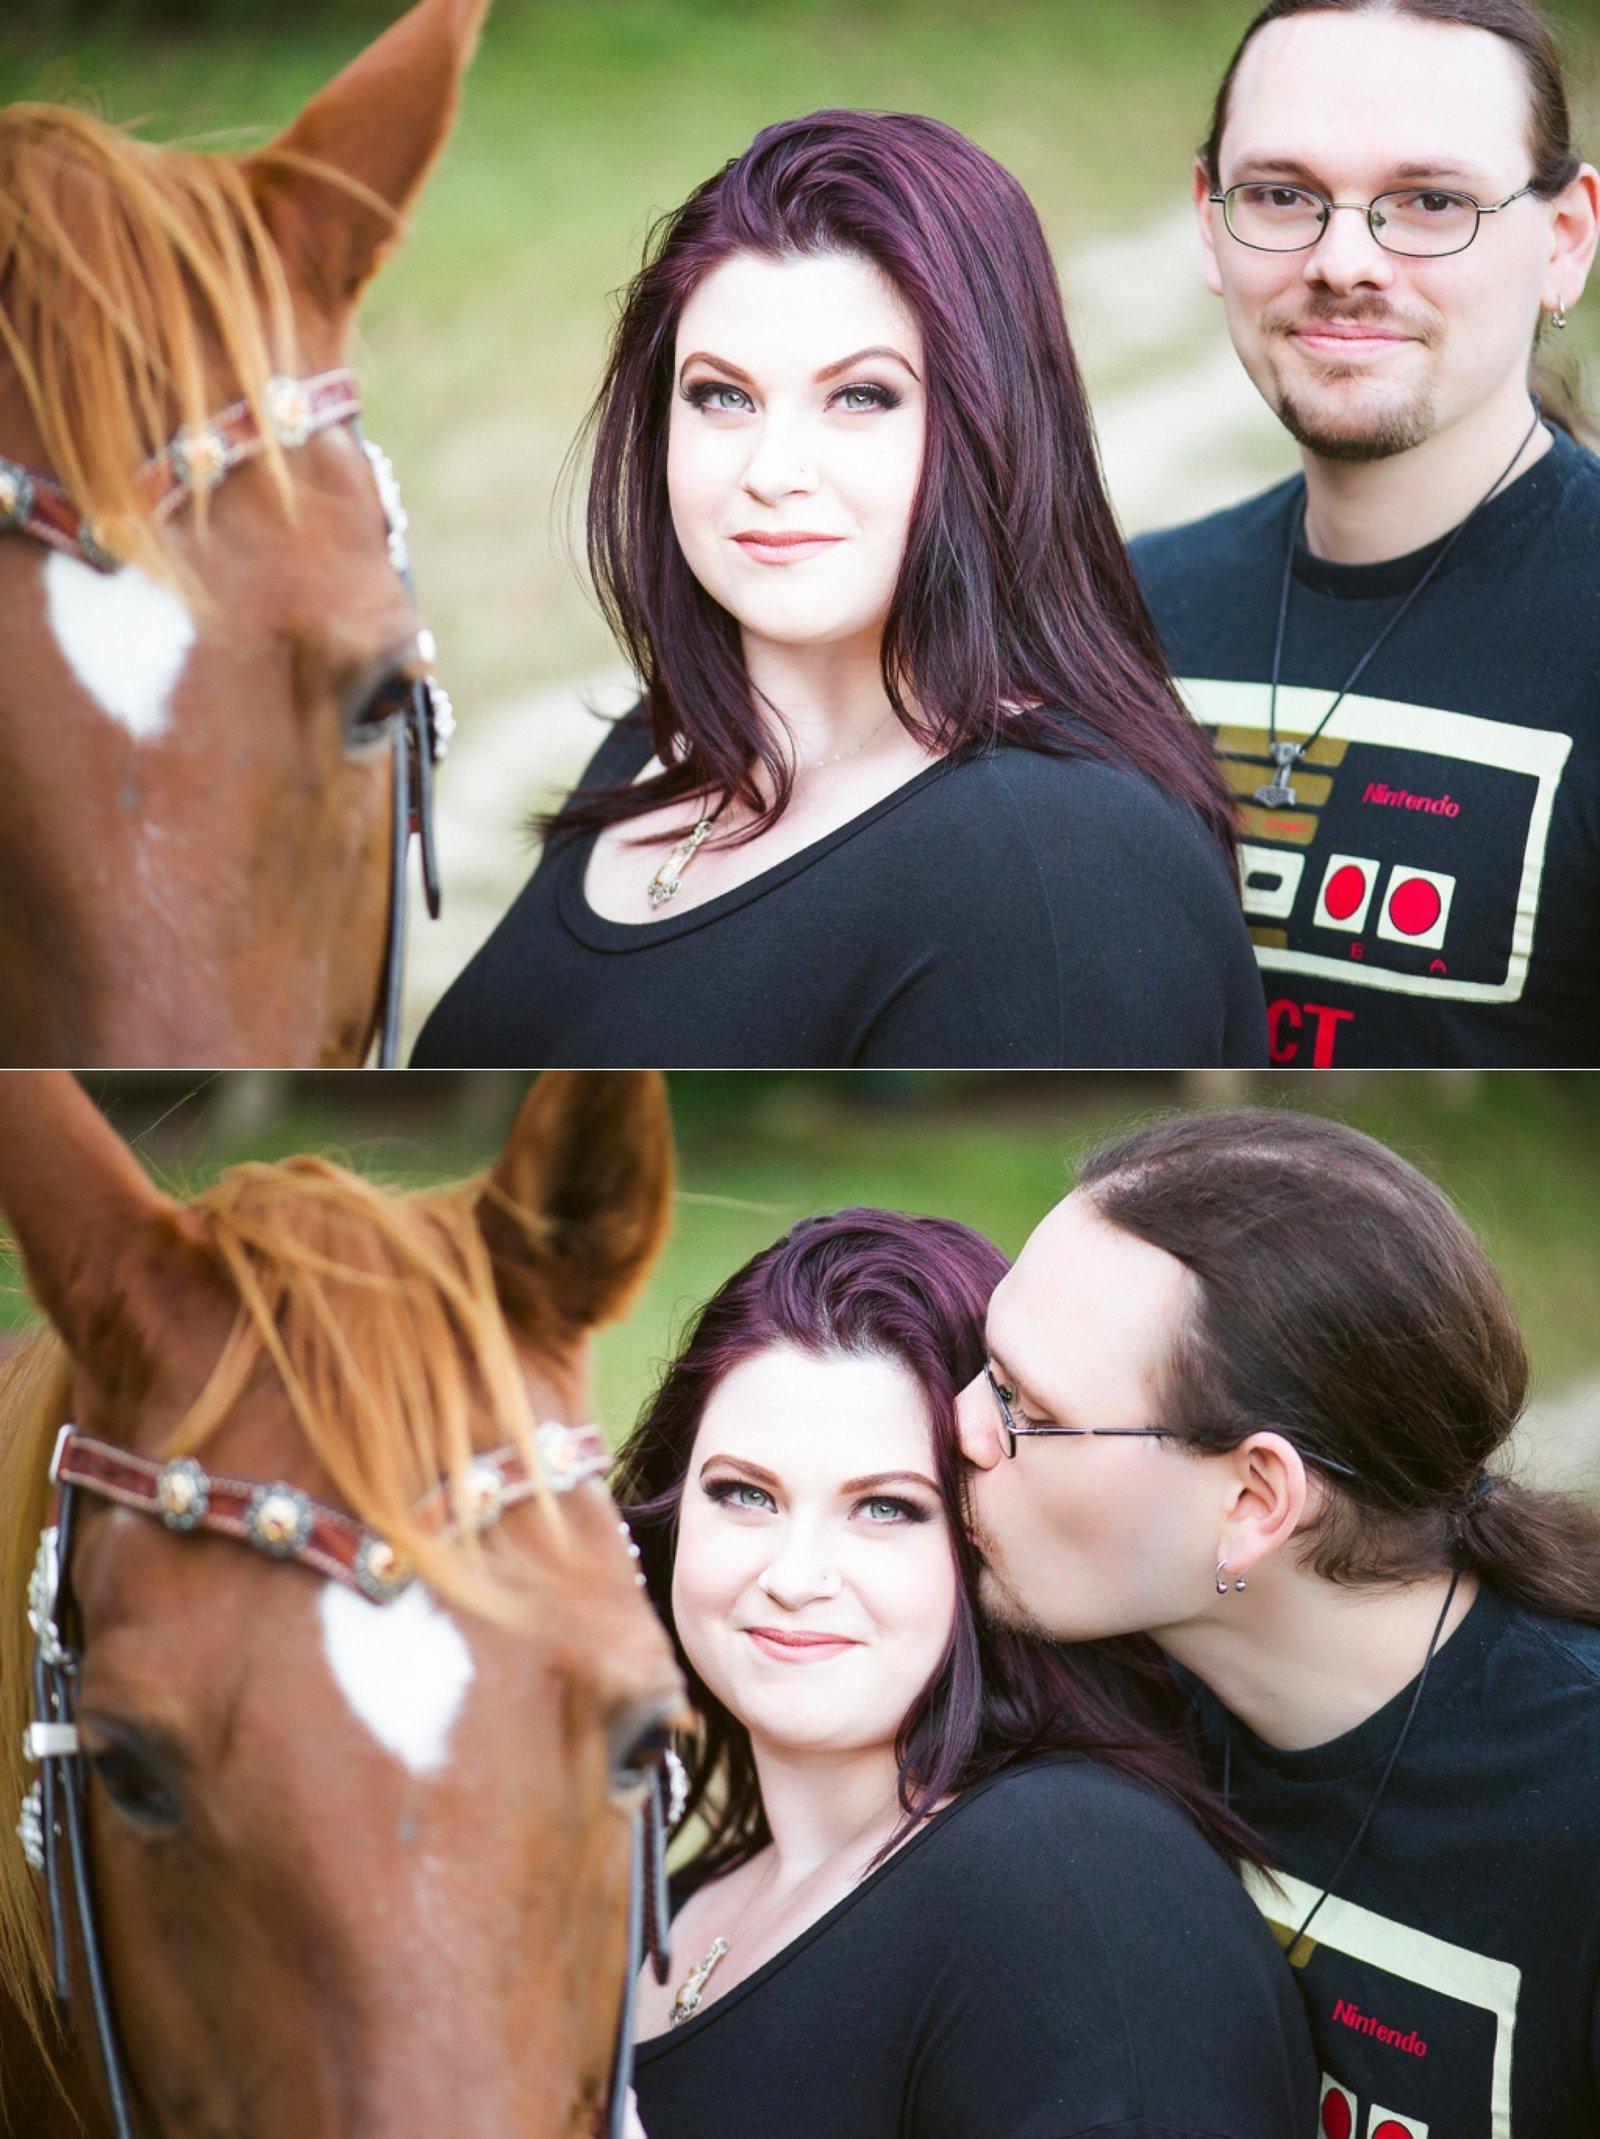 Horse_Farm_Engagement_shoot_new_jersey_wedding_Photography021